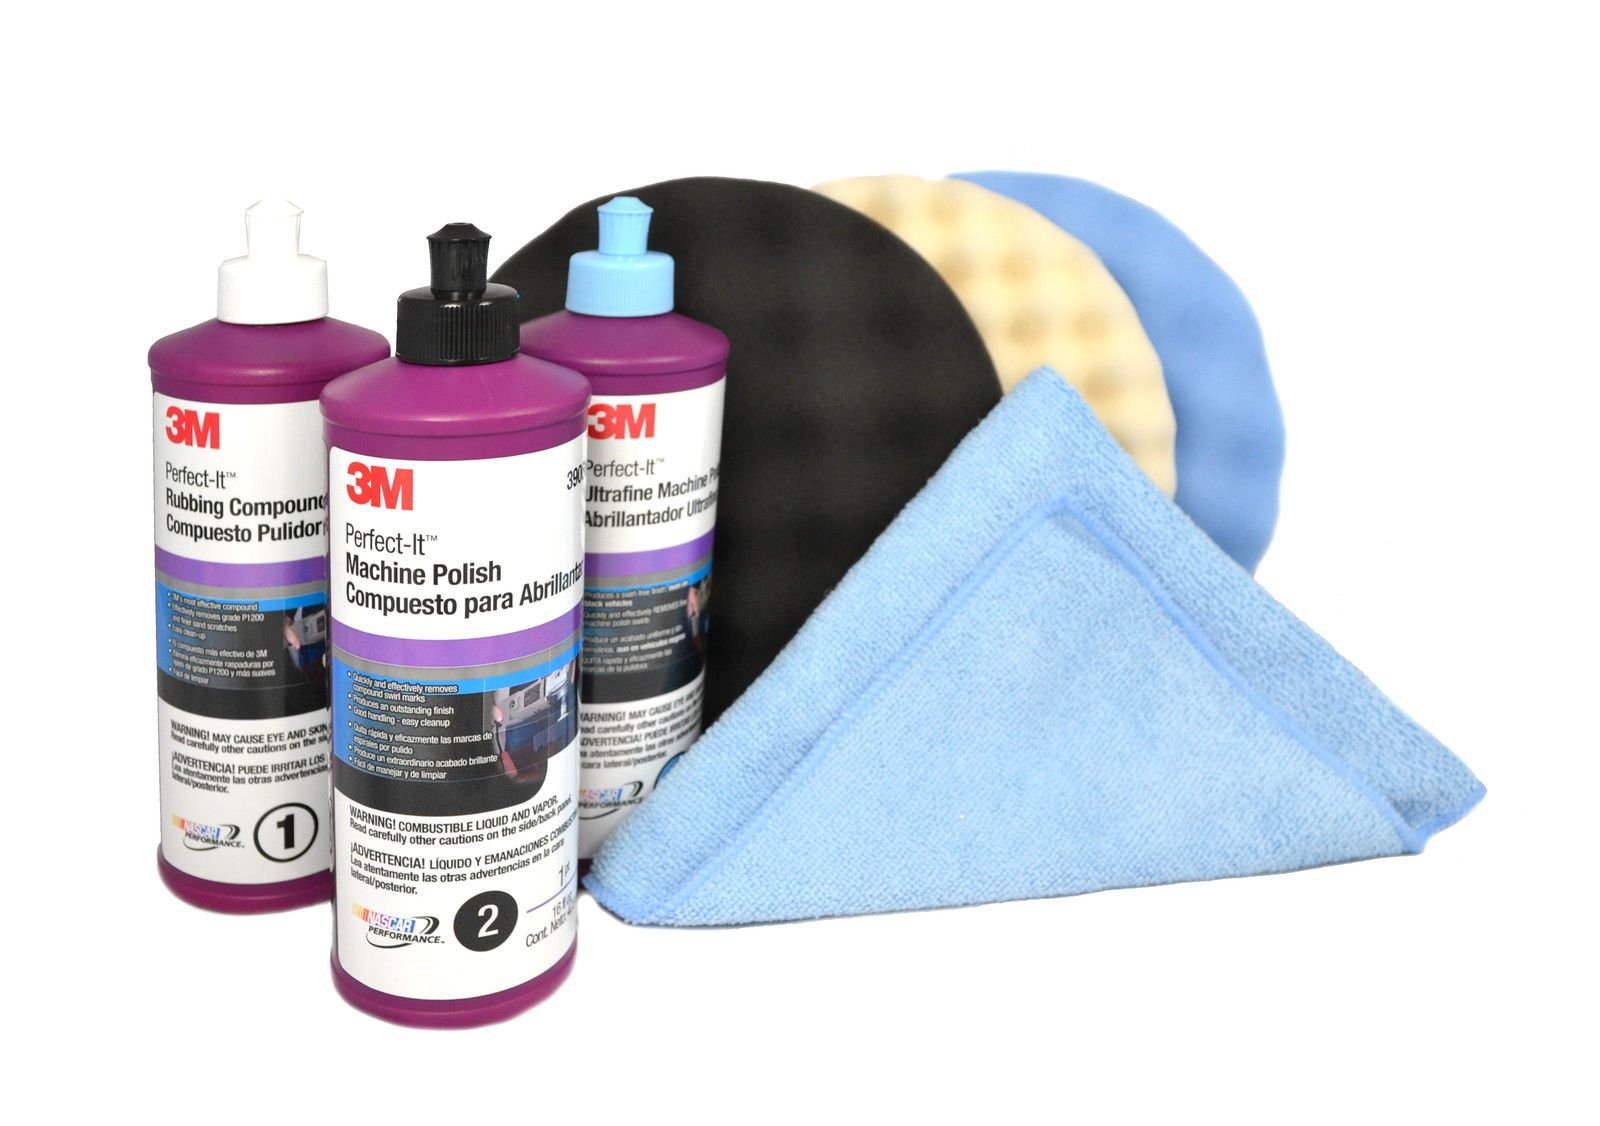 3M Perfect It Buffing & Polishing Kit (39060,39061,39062,5723,5725,5751,6017) by 3M